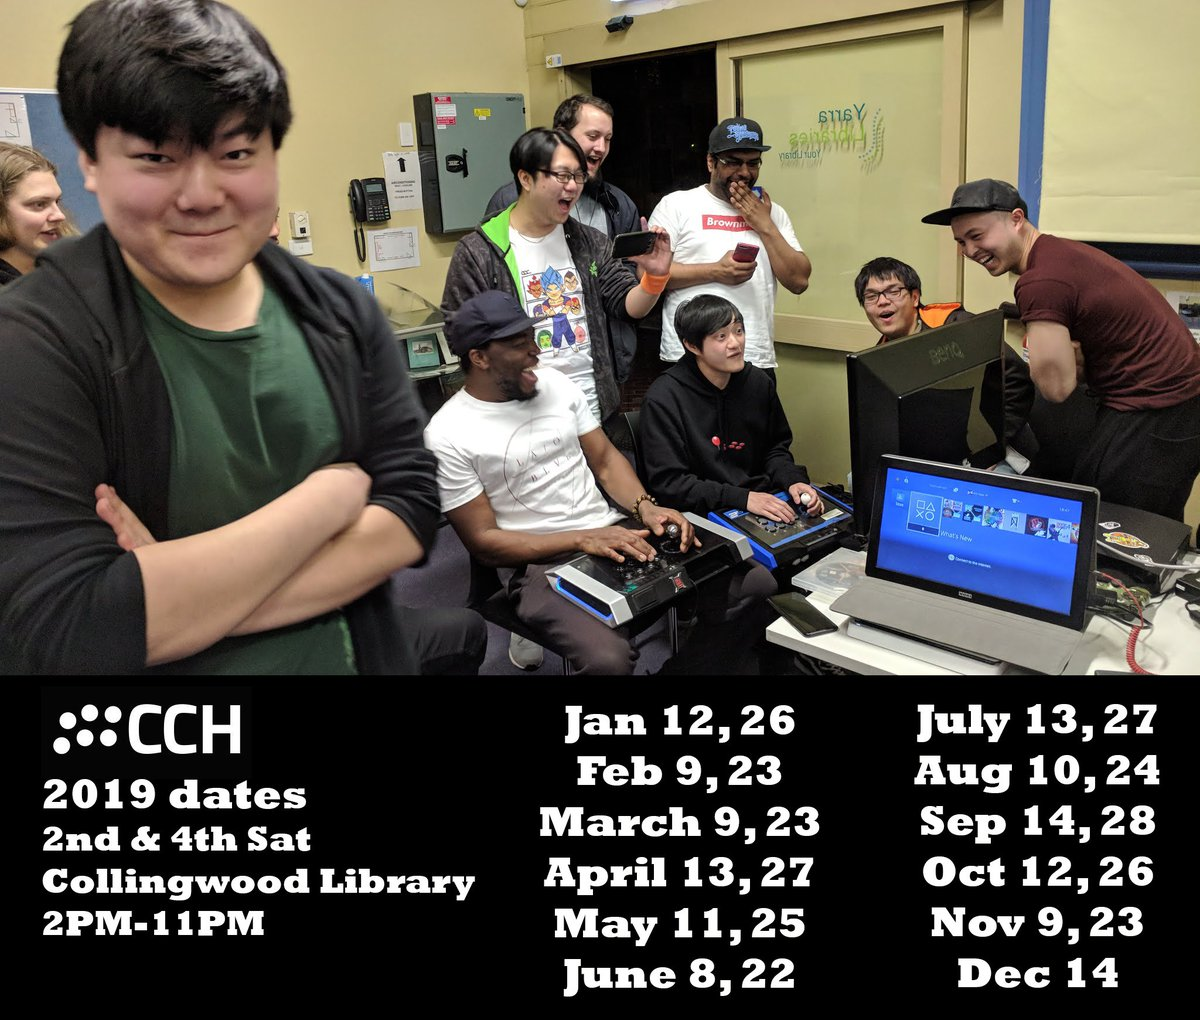 CCH 2019 dates sticky:  Every 2nd &amp; 4th Saturday of the month at Collingwood library (11 Stanton St, Abbotsford 3066) Fighting games casuals 2PM-11PM  Jan 12, 26 Feb 9, 23 March 9, 23 April 13, 27 May 11, 25 June 8, 22 July 13, 27 Aug 10, 24 Sep 14, 28 Oct 12, 26 Nov 9, 23 Dec 14 <br>http://pic.twitter.com/flFtCEhcF6